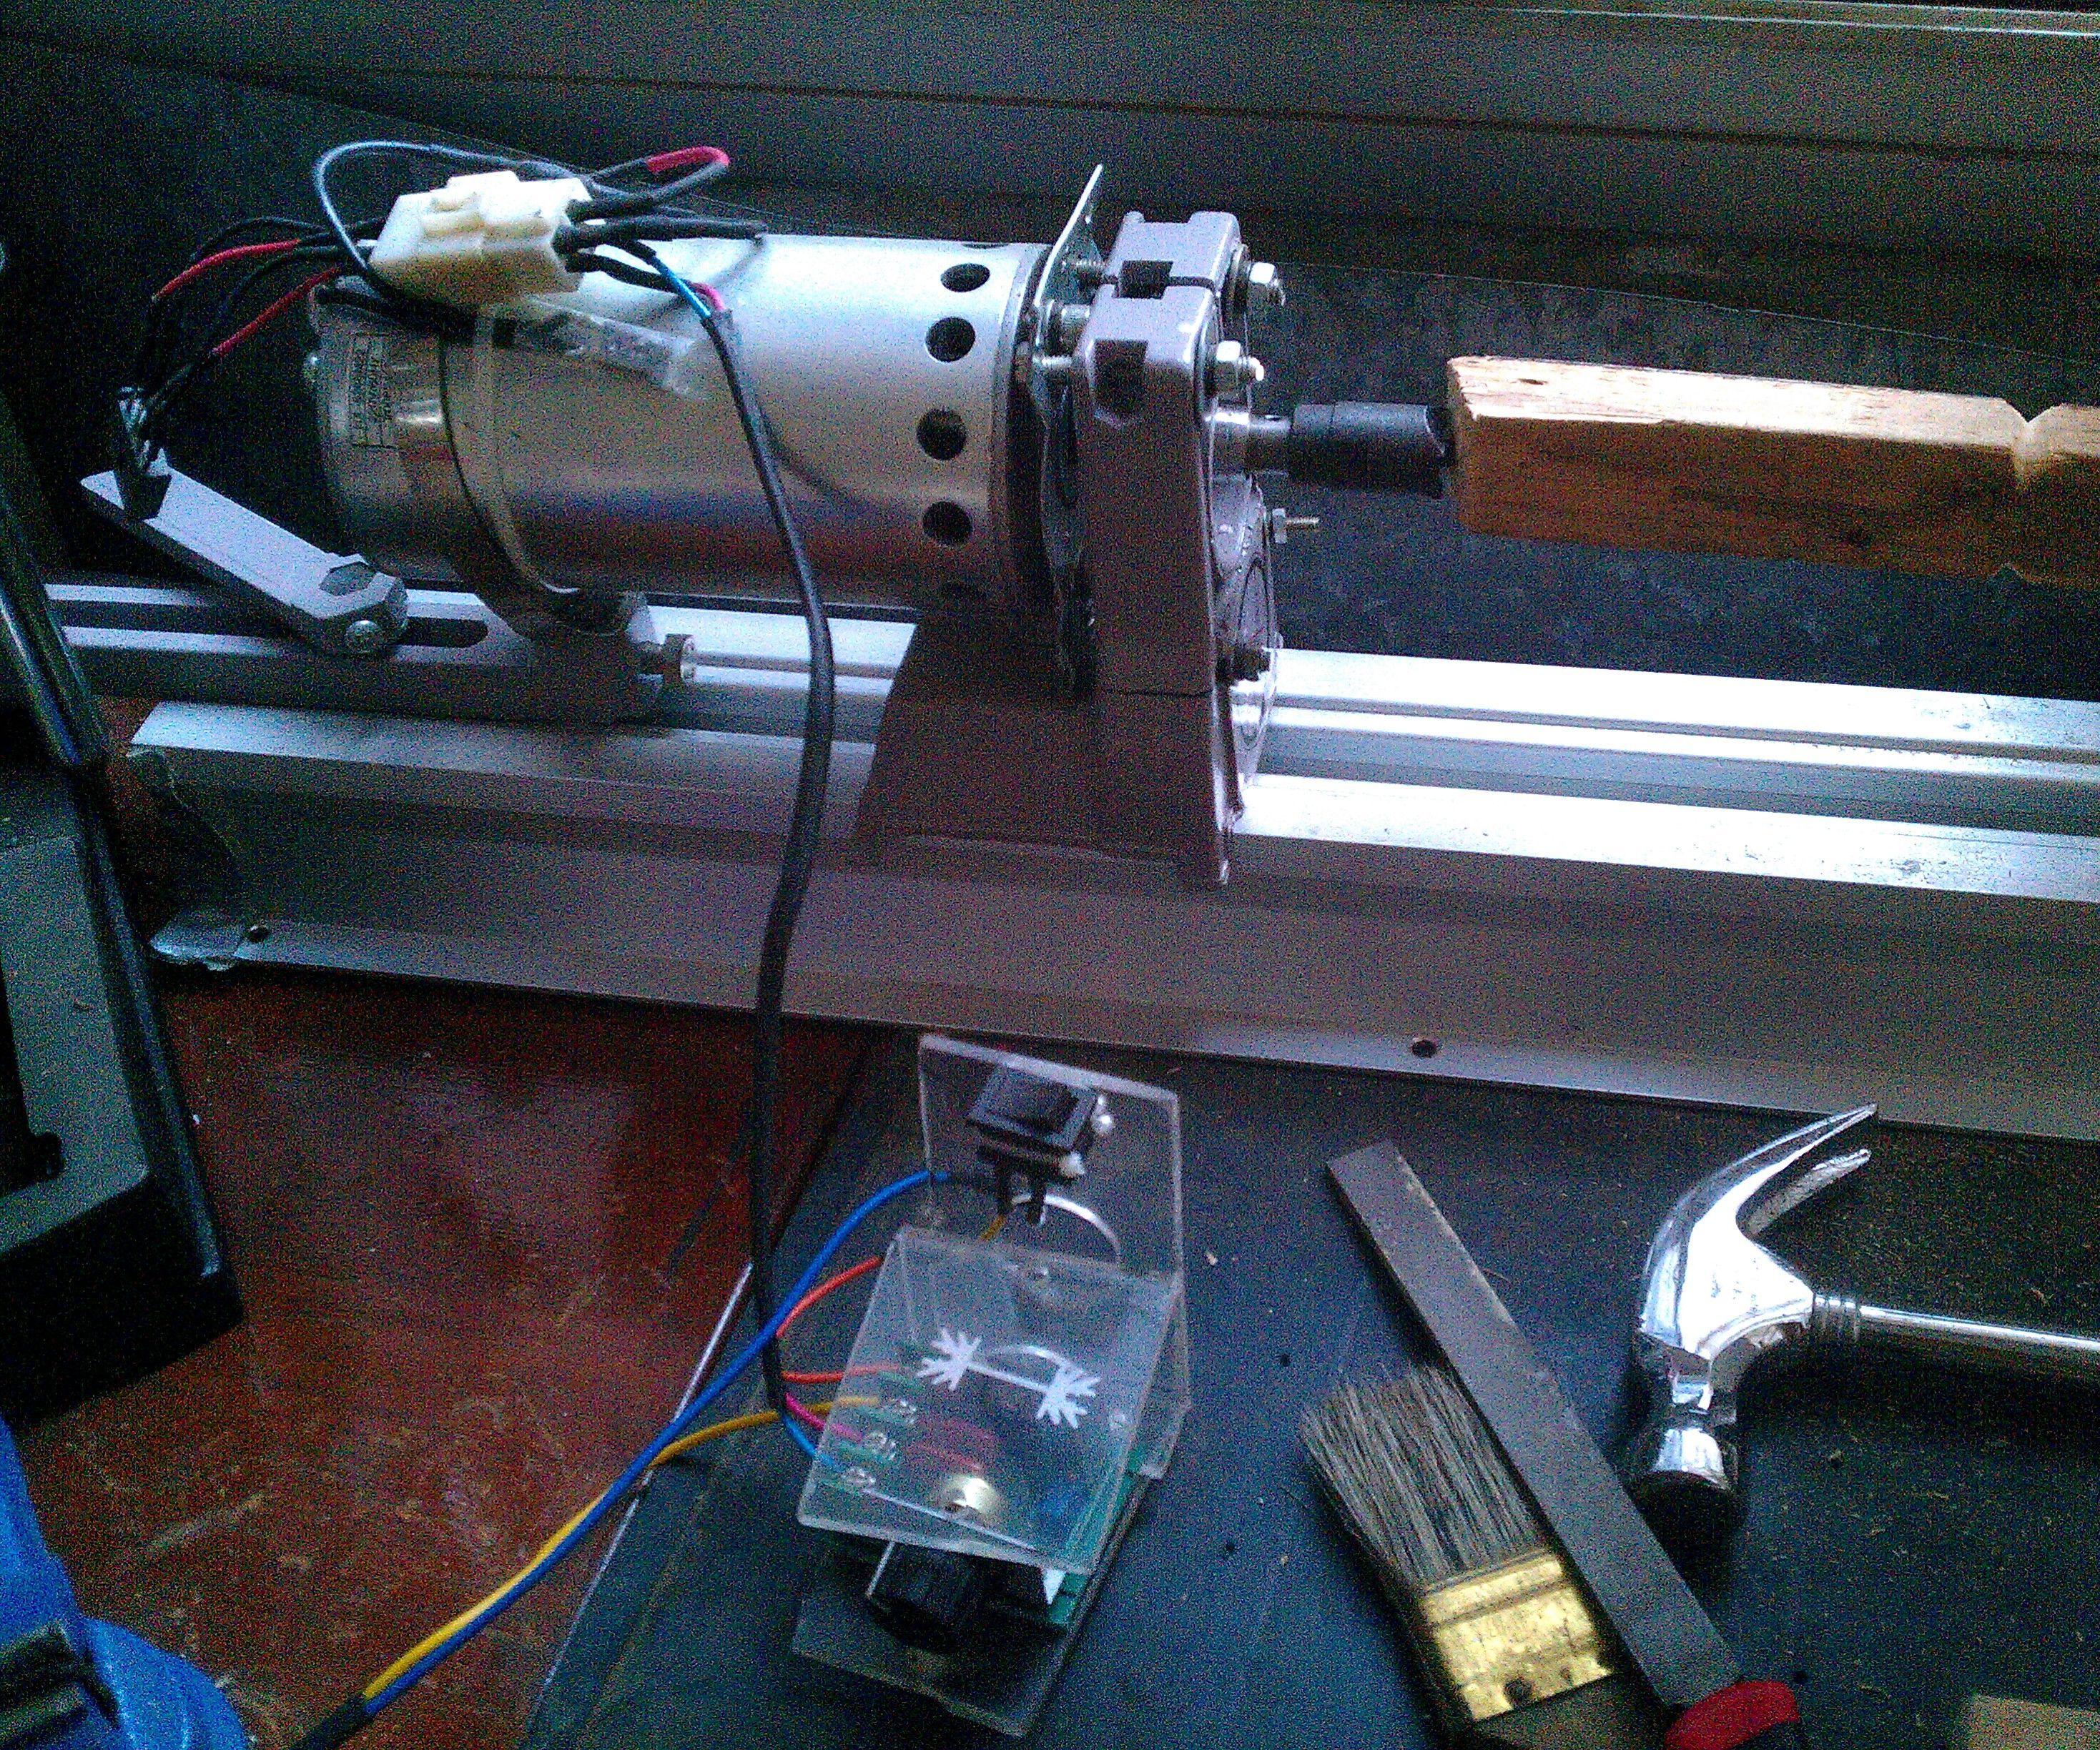 A simple lathe with adjustable speed